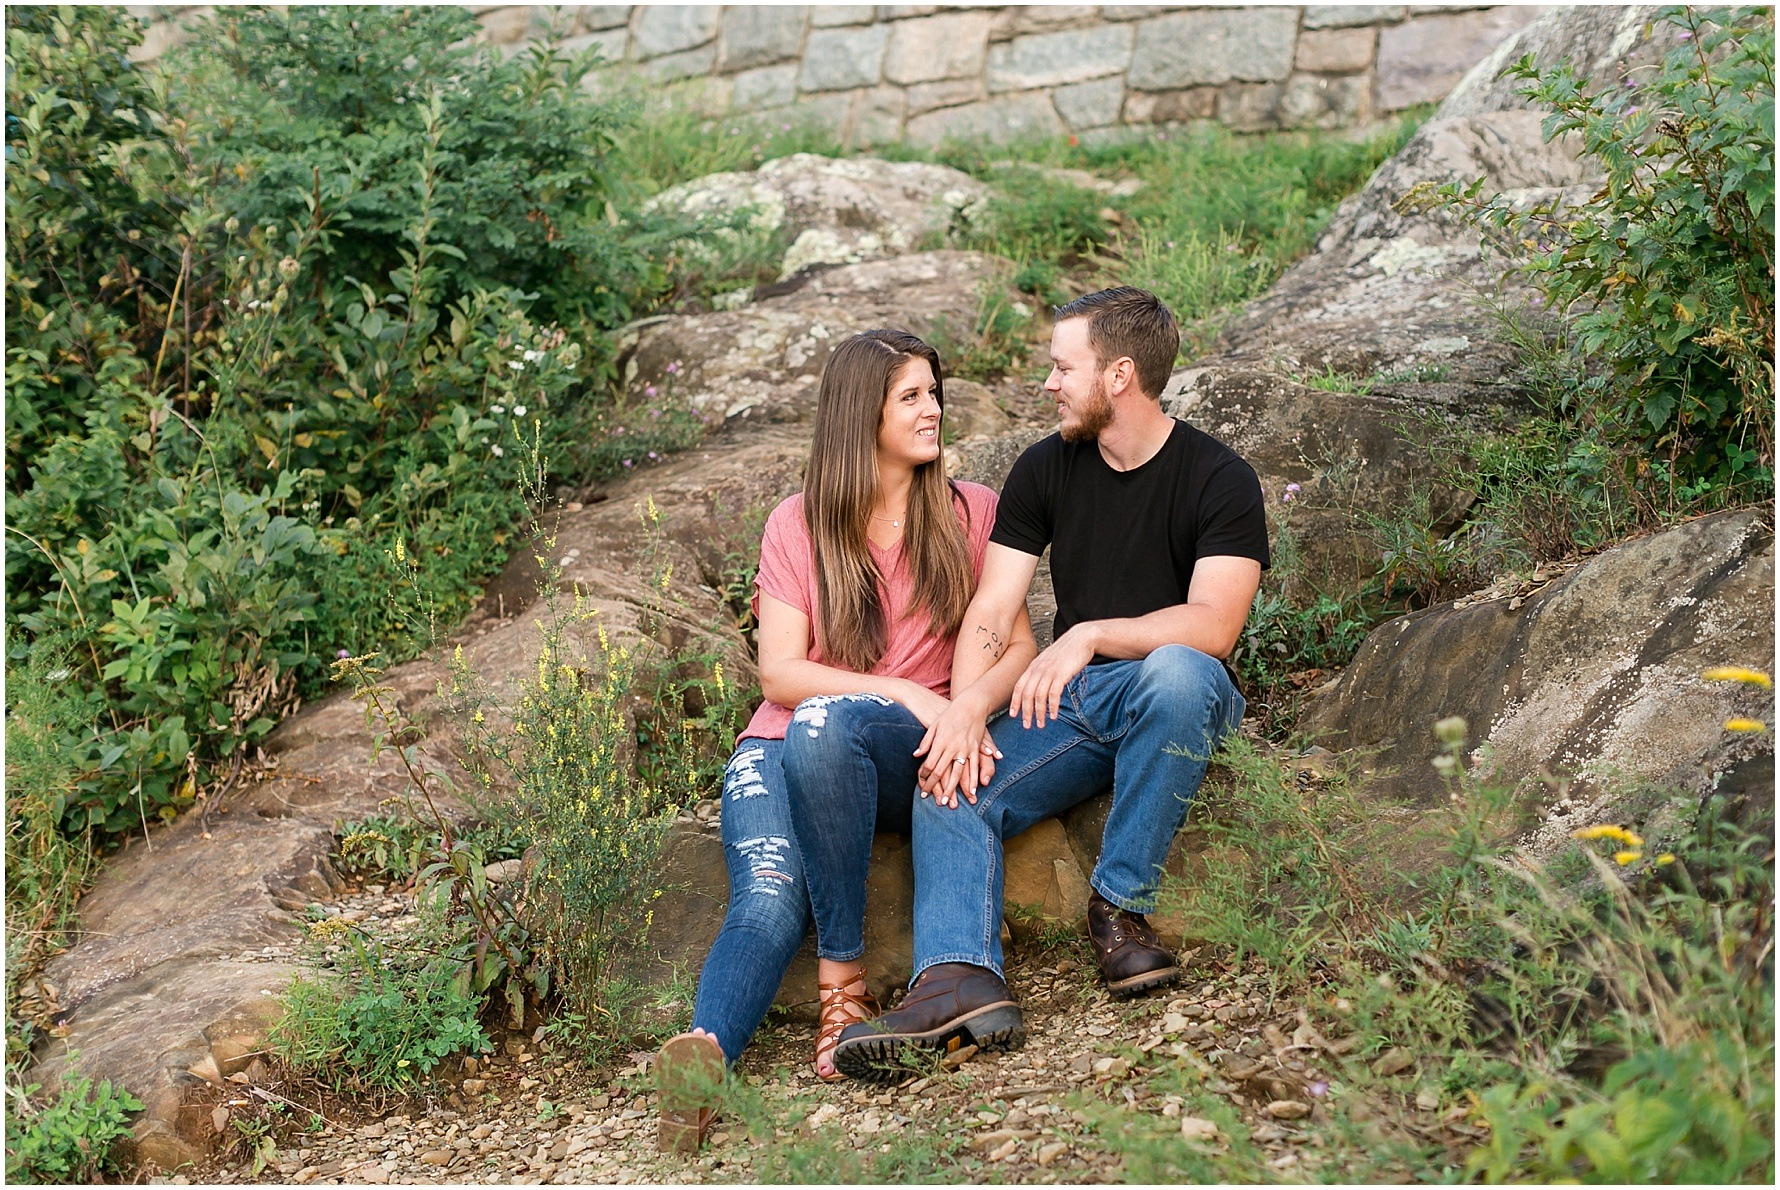 blue ridge parkway engagement photography ravens roost overlook engagement Jessica Ryan photography